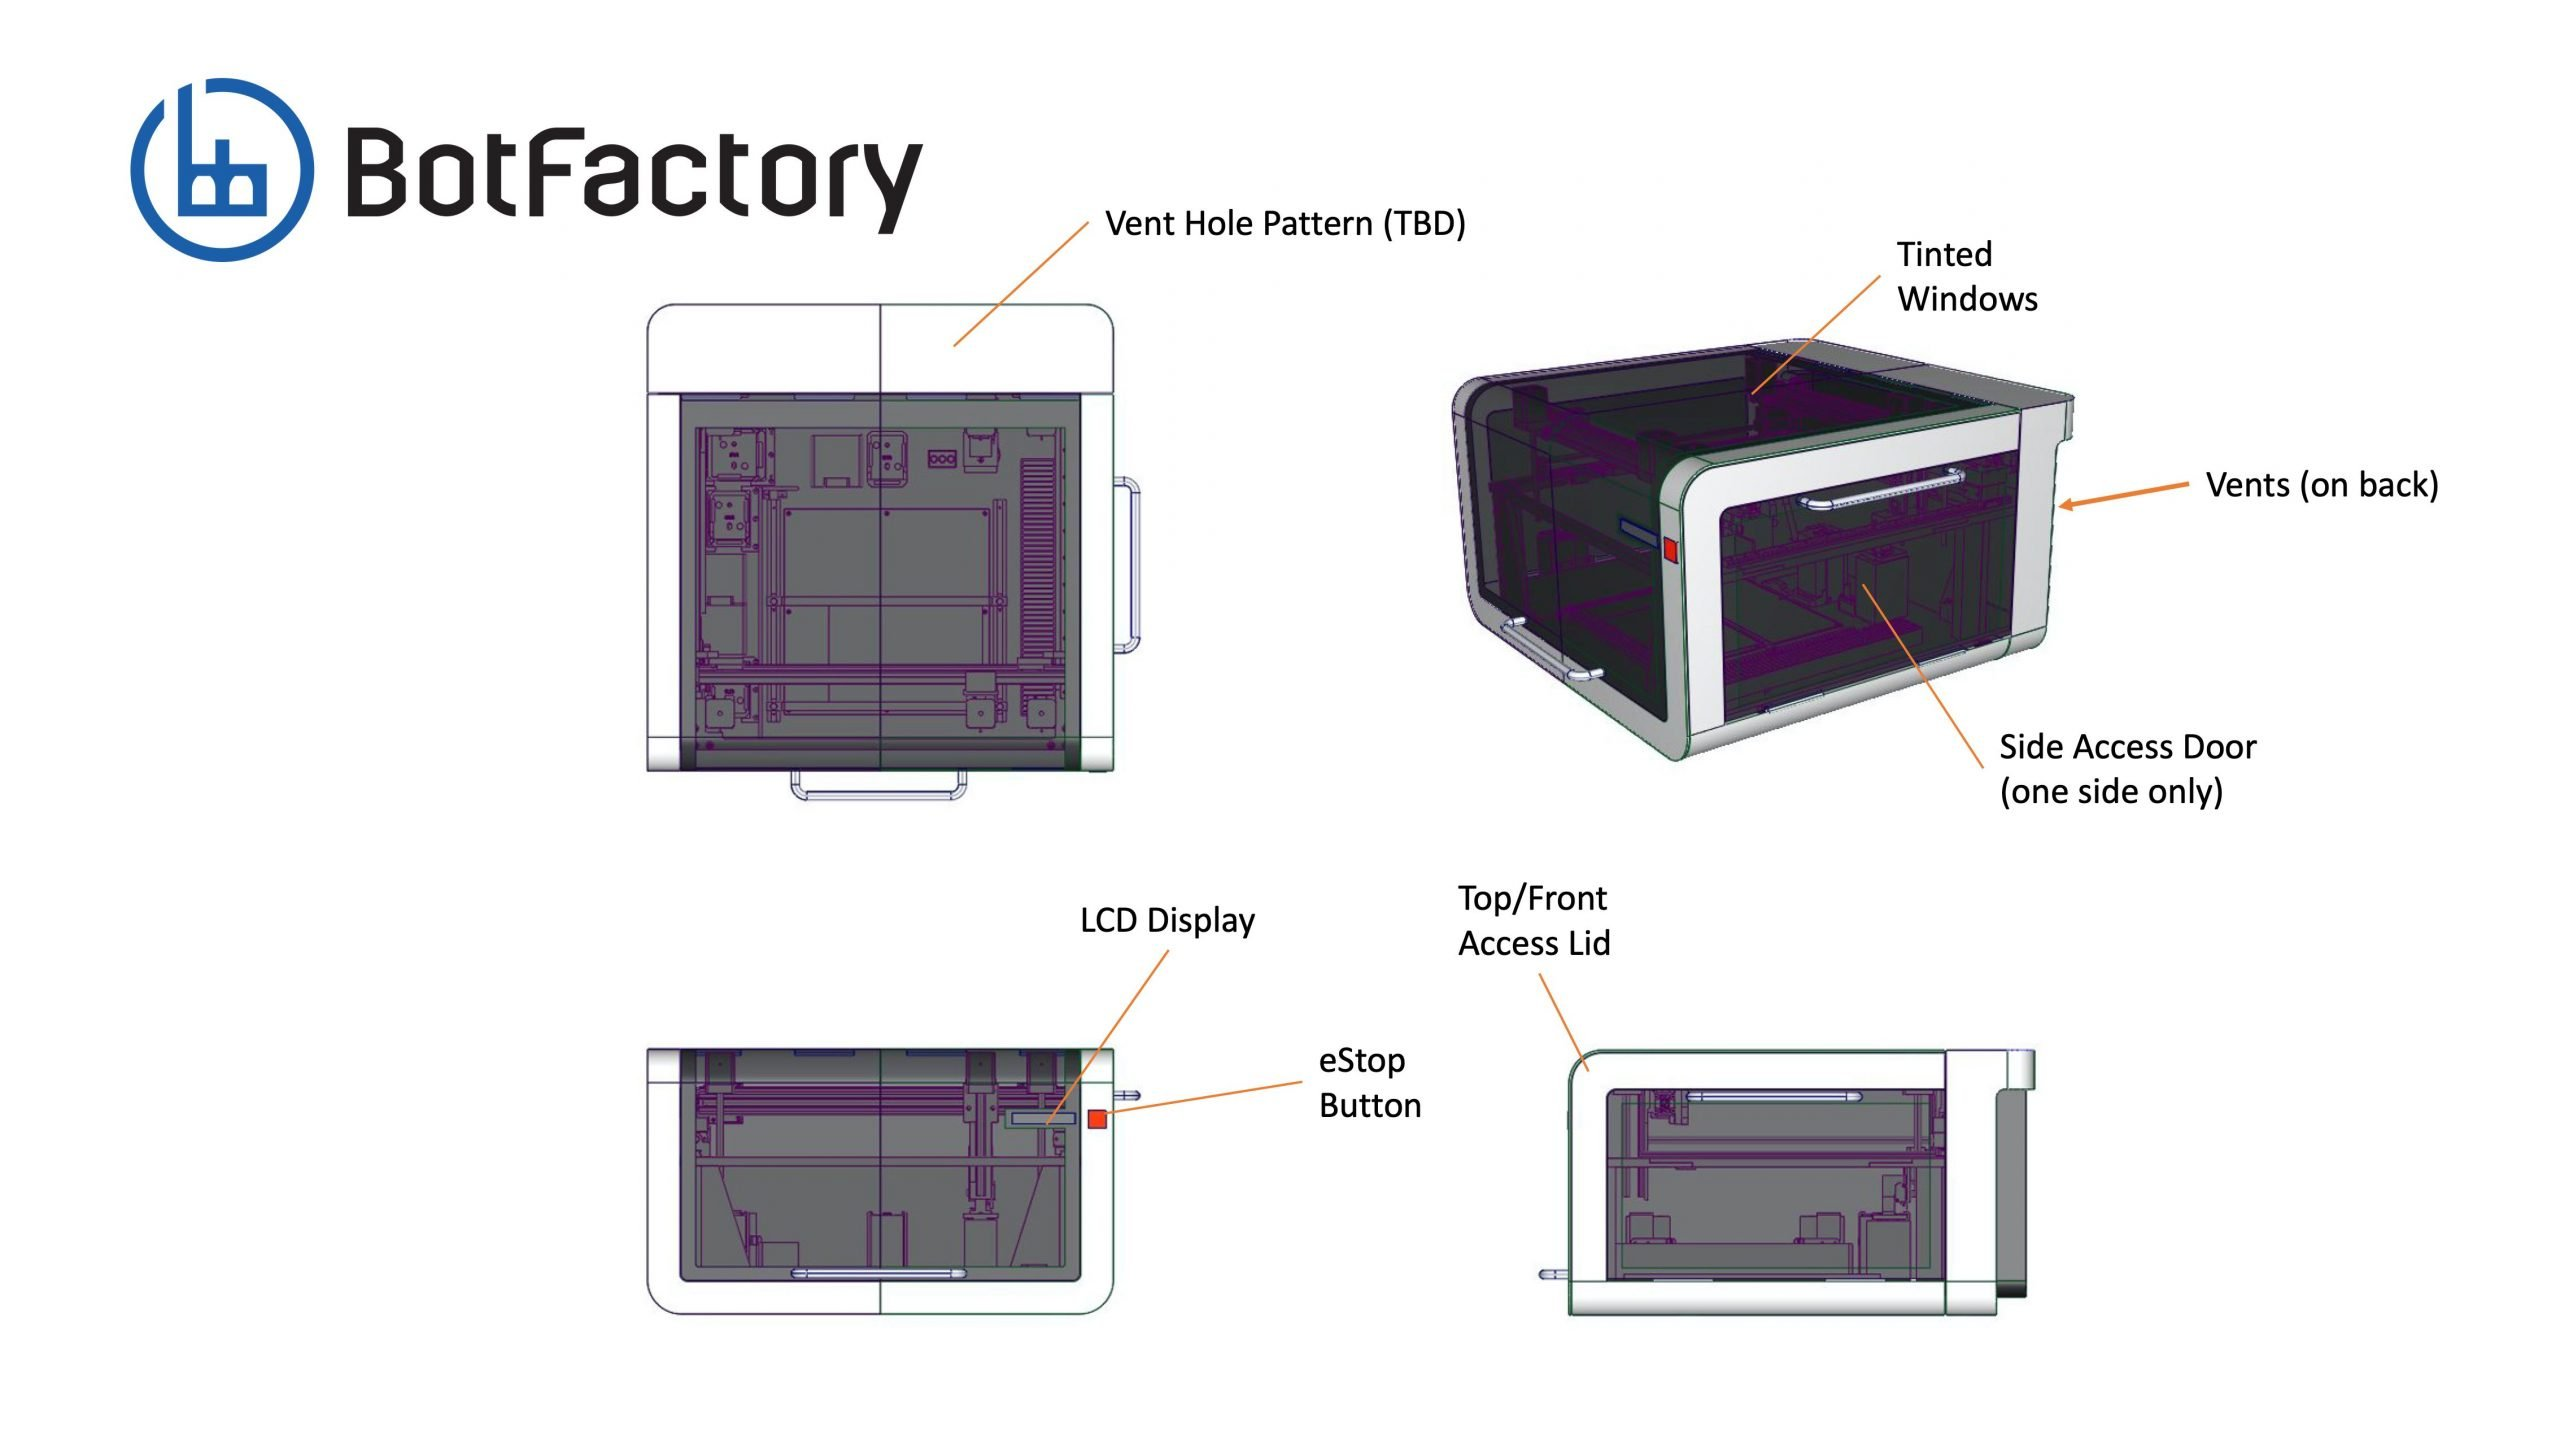 US Air Force to work with BotFactory on next generation of electronics 3D printers